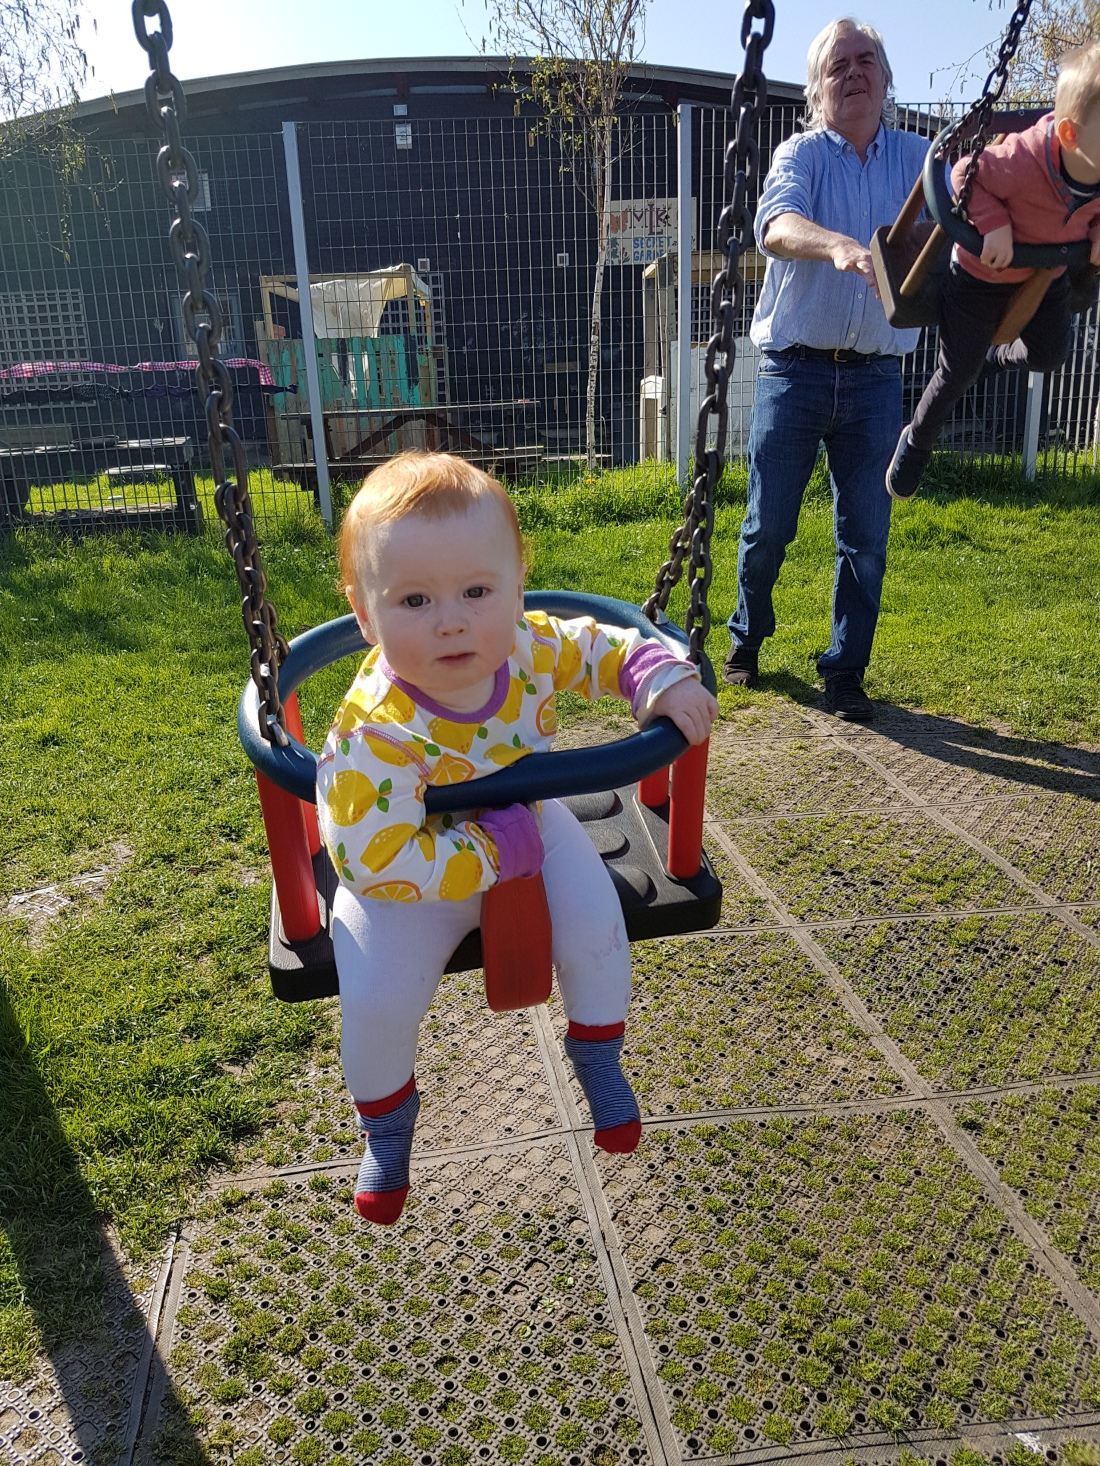 10 month old baby on swings in Paradise Park